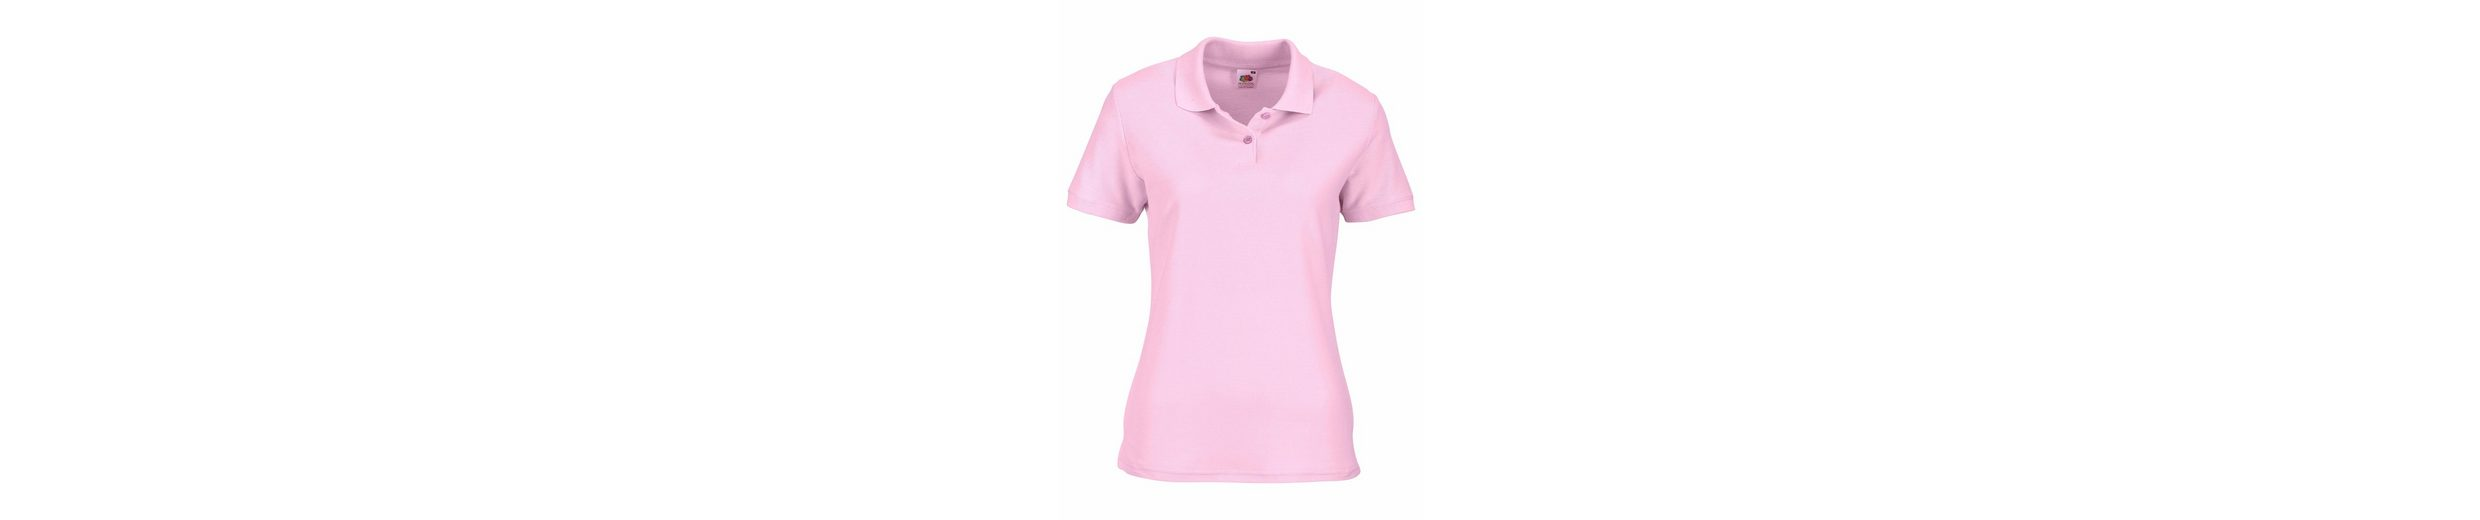 Polo Premium Loom Fit Lady Poloshirt Loom the Fit Premium Fruit of Lady the Fruit of Poloshirt Zqxwf6dE6